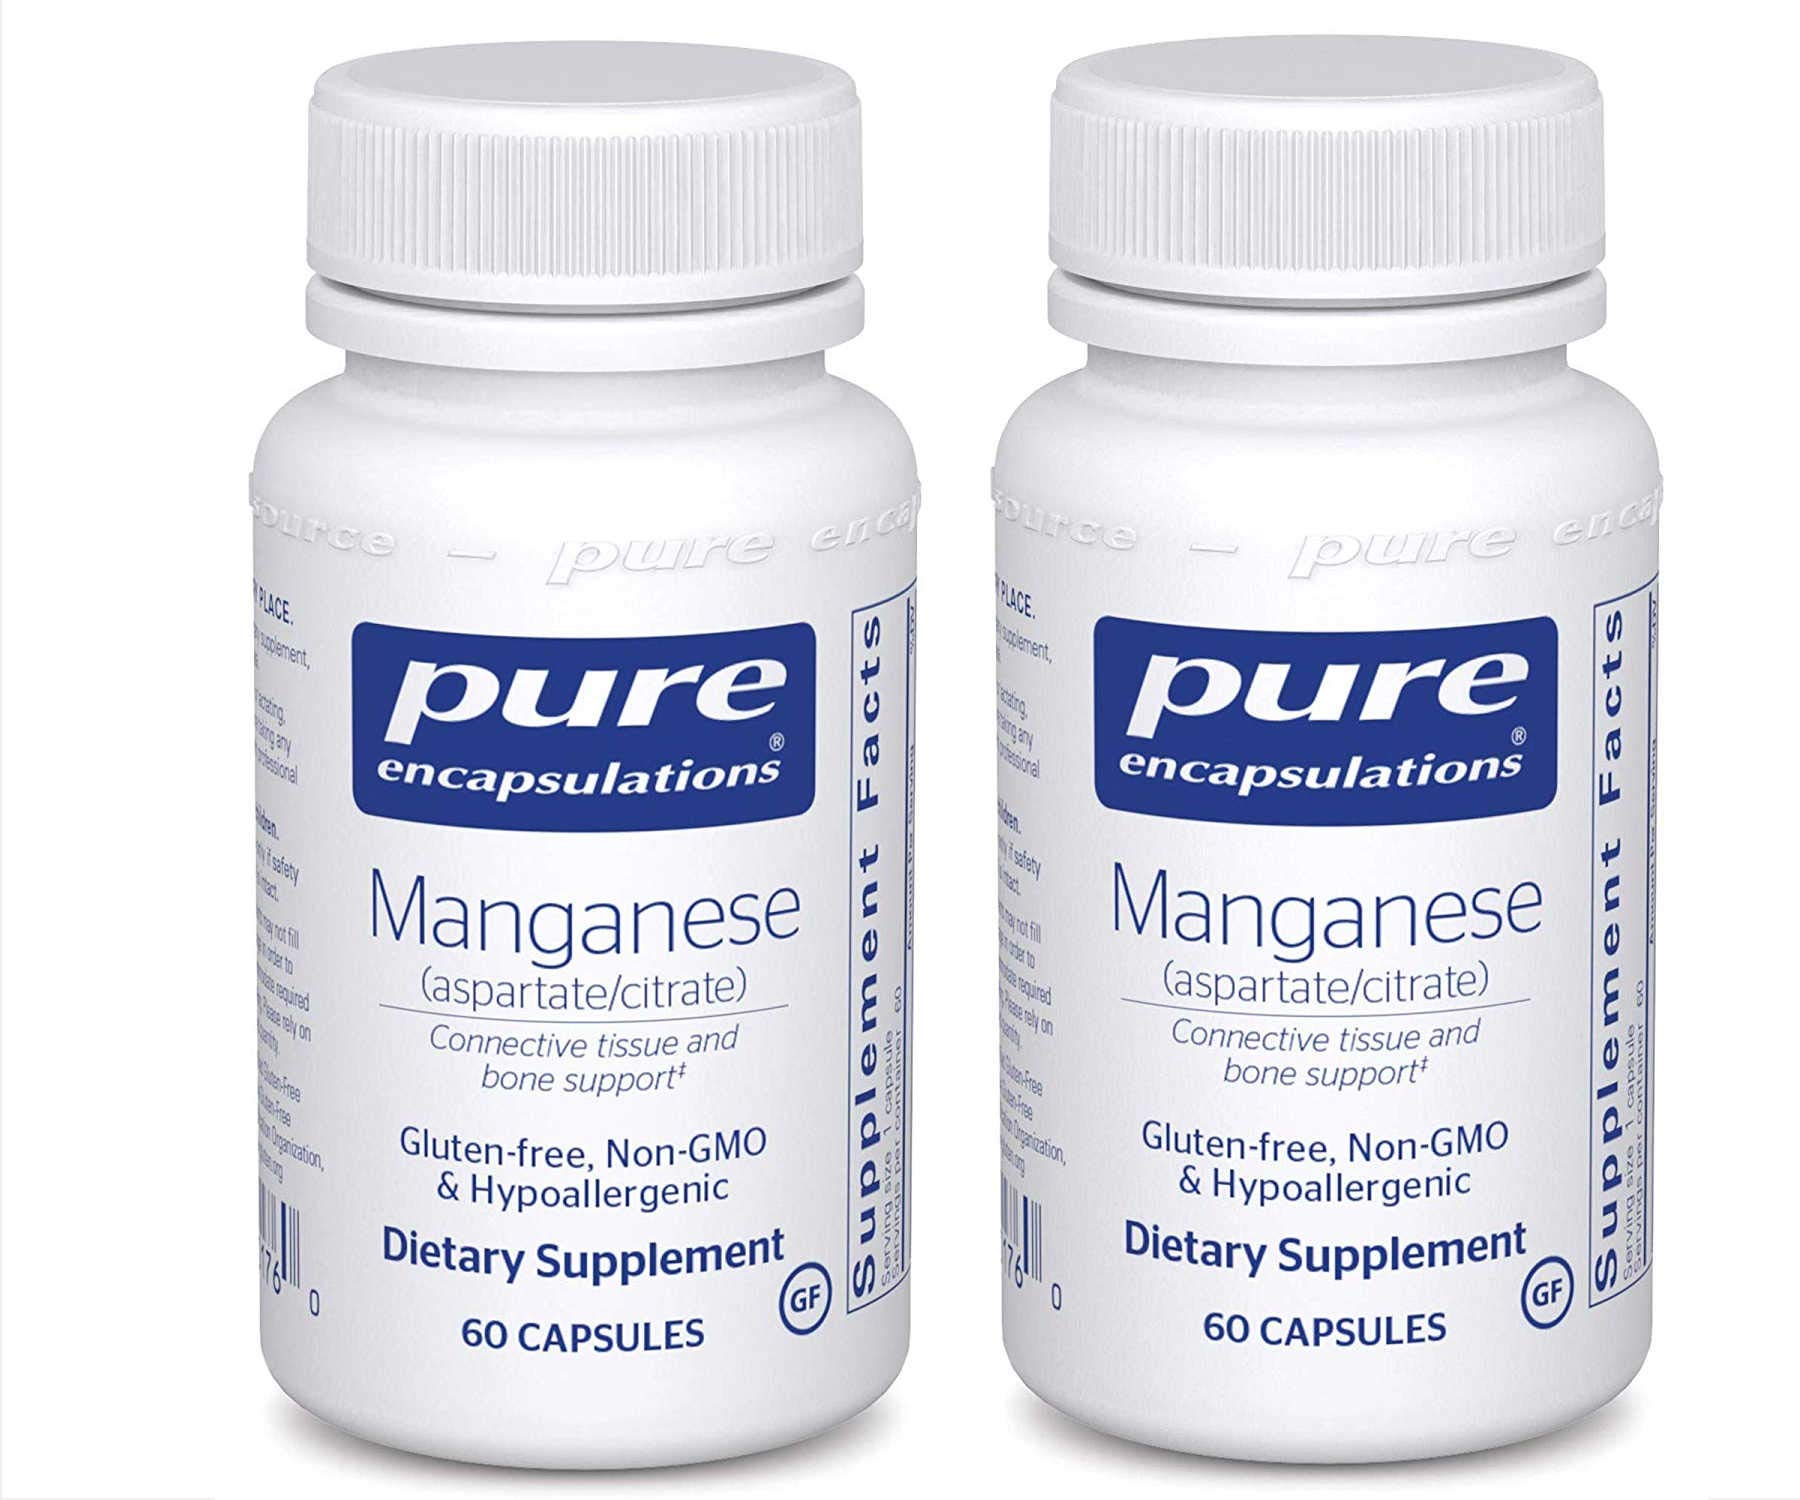 Pure Encapsulations Manganese Aspartate/Citrate Gluten Free Non GMO and Hypoallergenic Dietary Supplement 8 Milligrams 60 Capsules (Pack of 2)